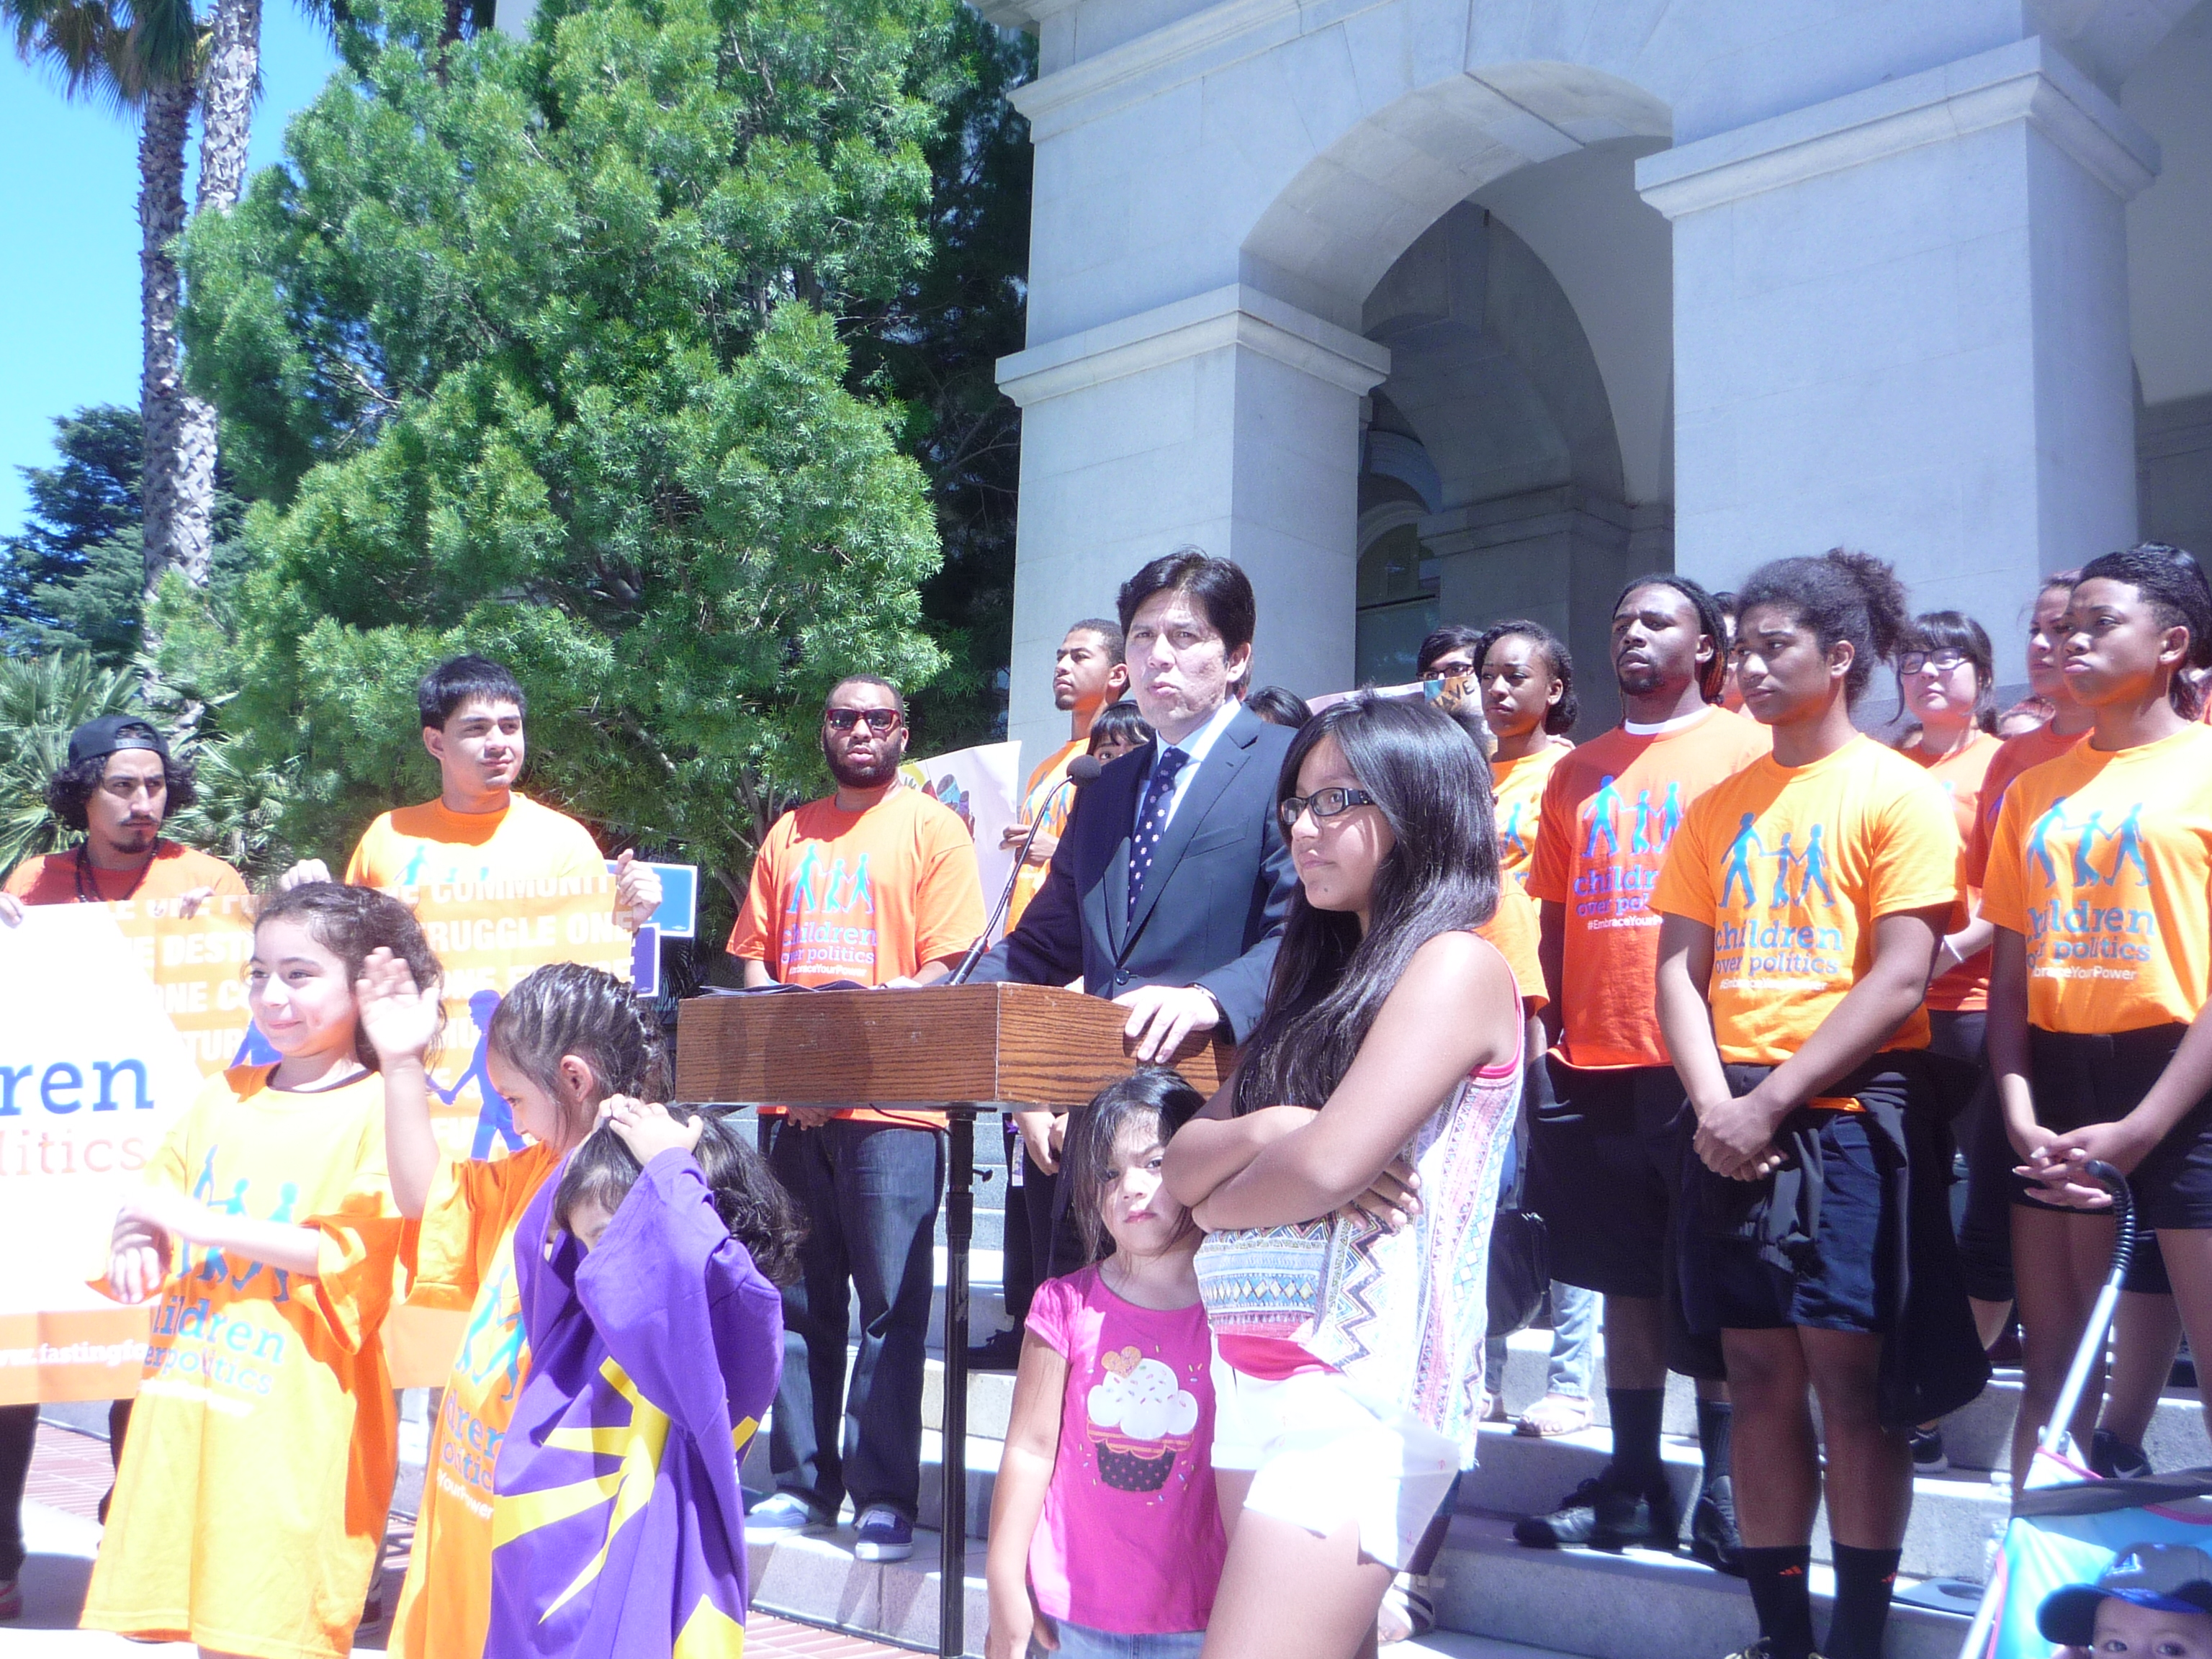 Senate President Pro Tempore Kevin De León with the young people. Photo: Fernando Andrés Torres.